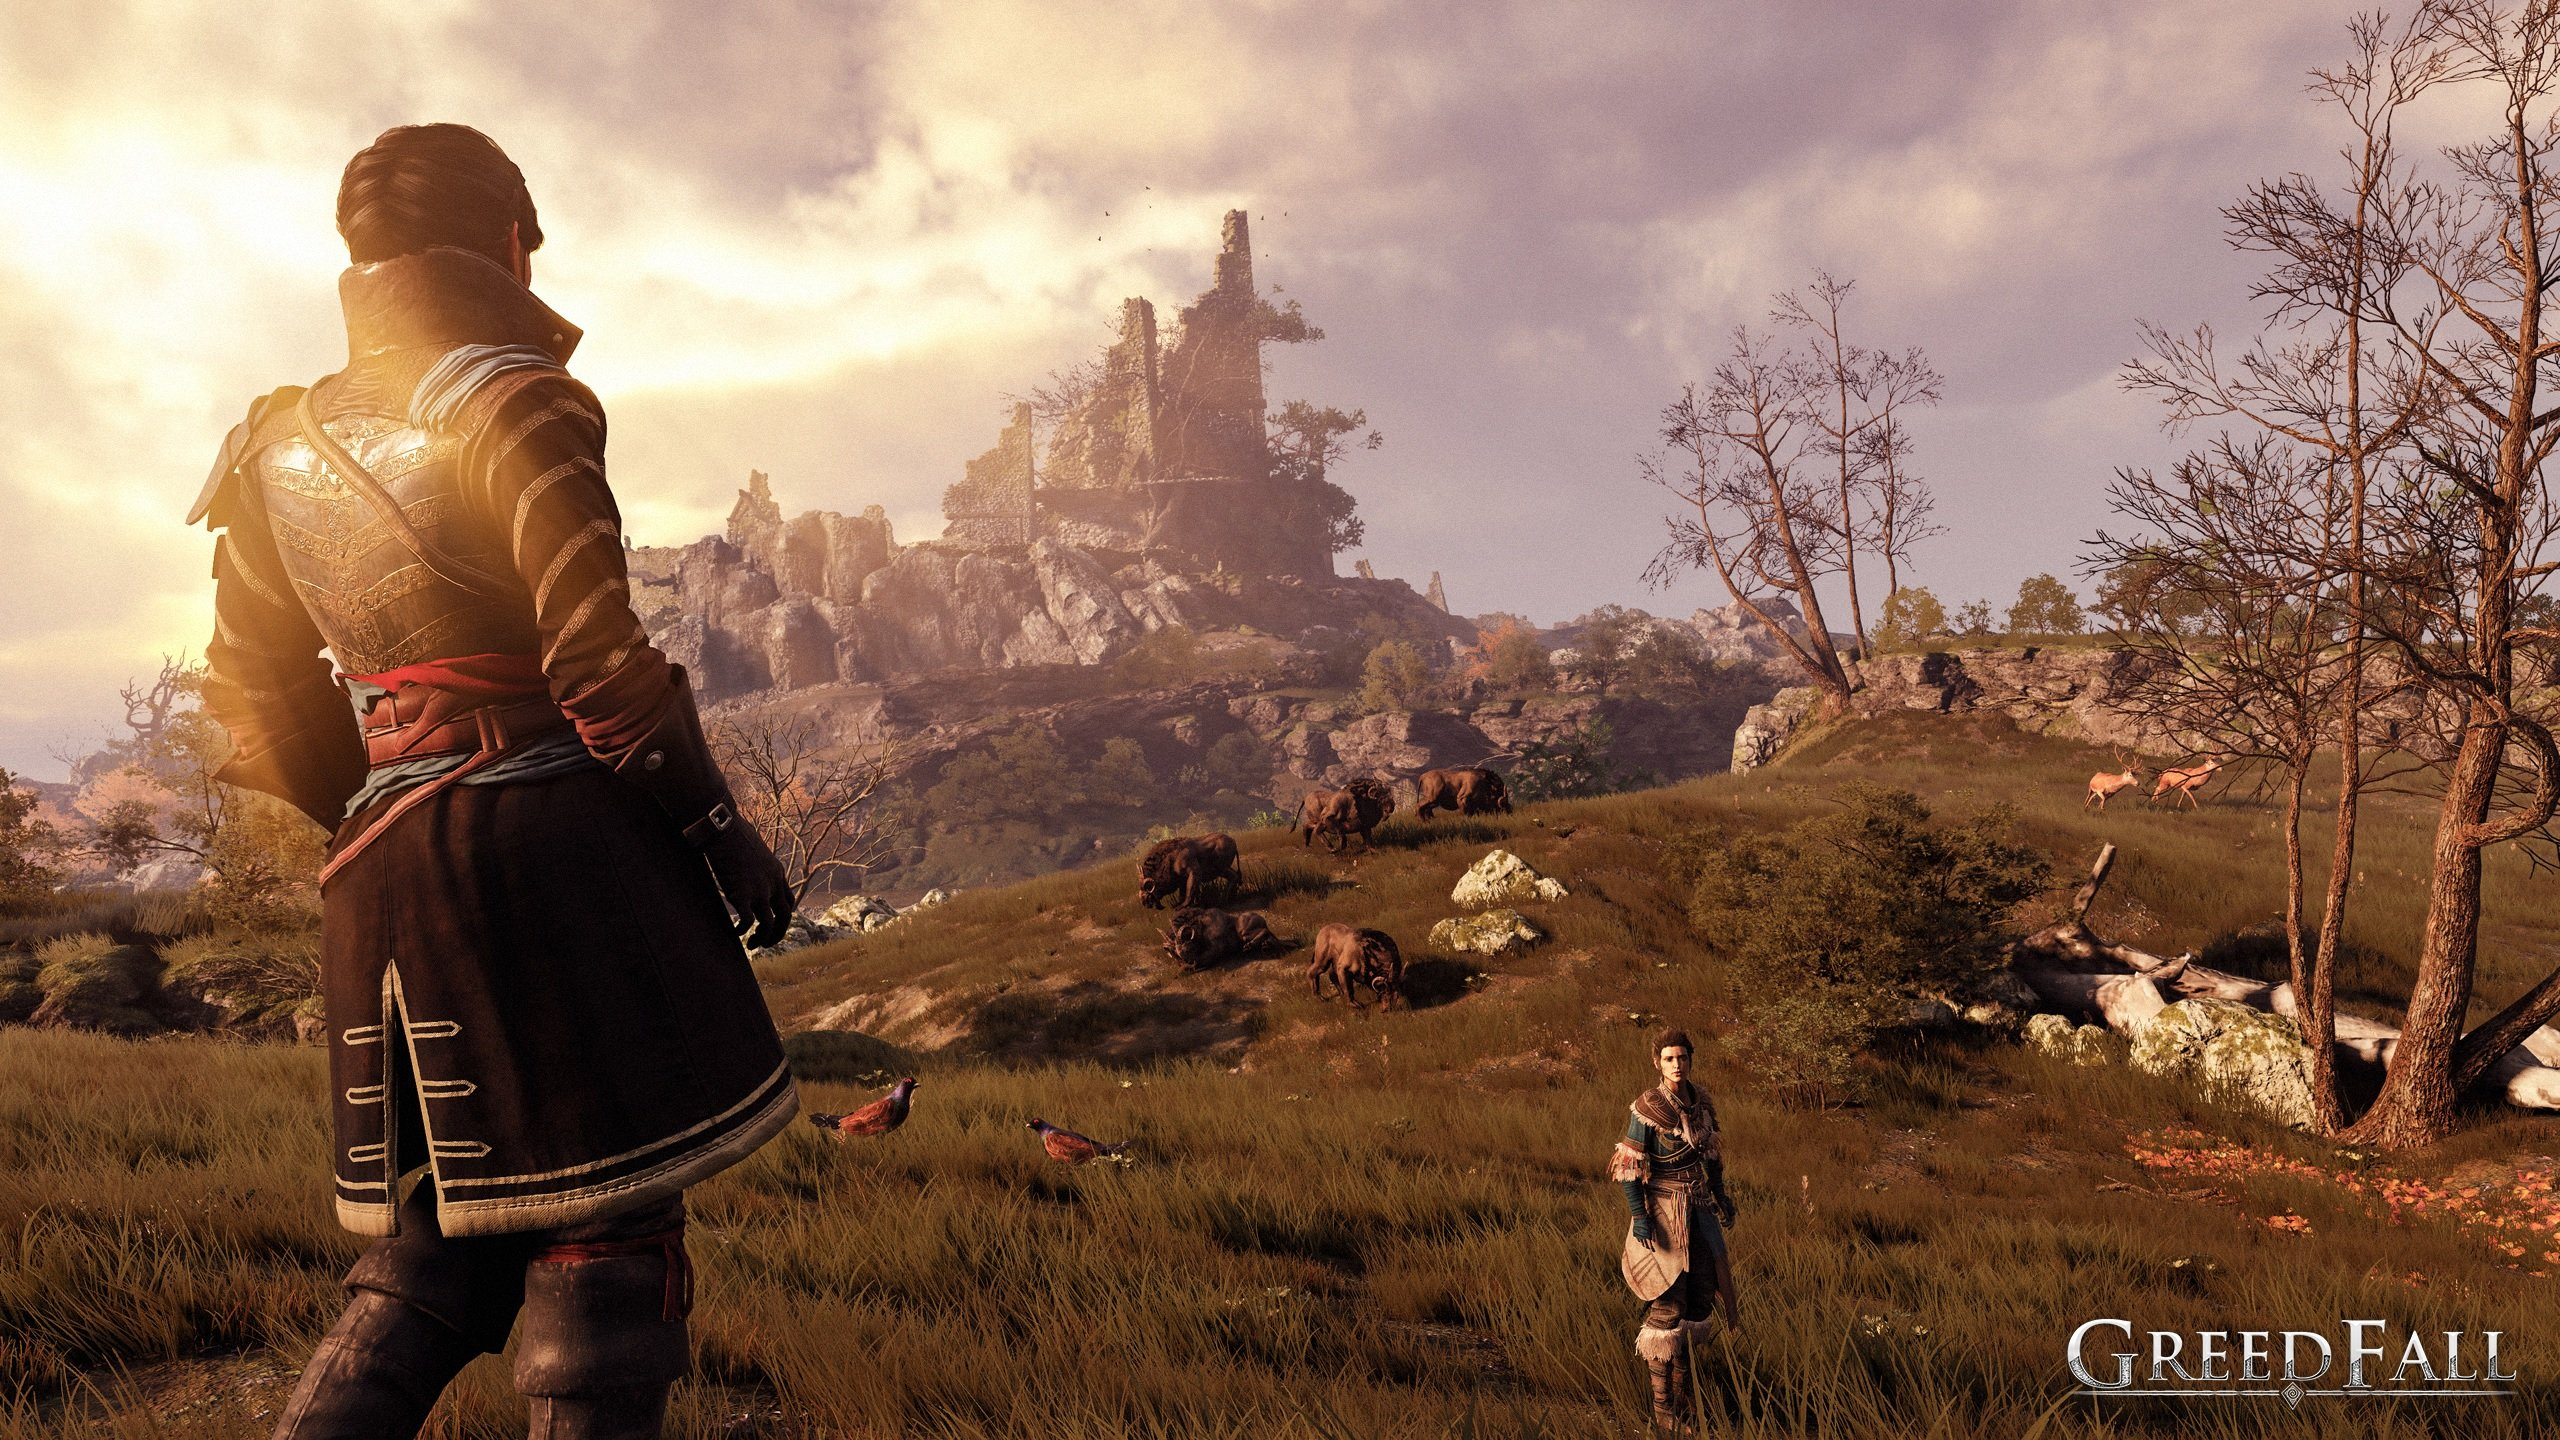 GreedFall review - An unexpected journey